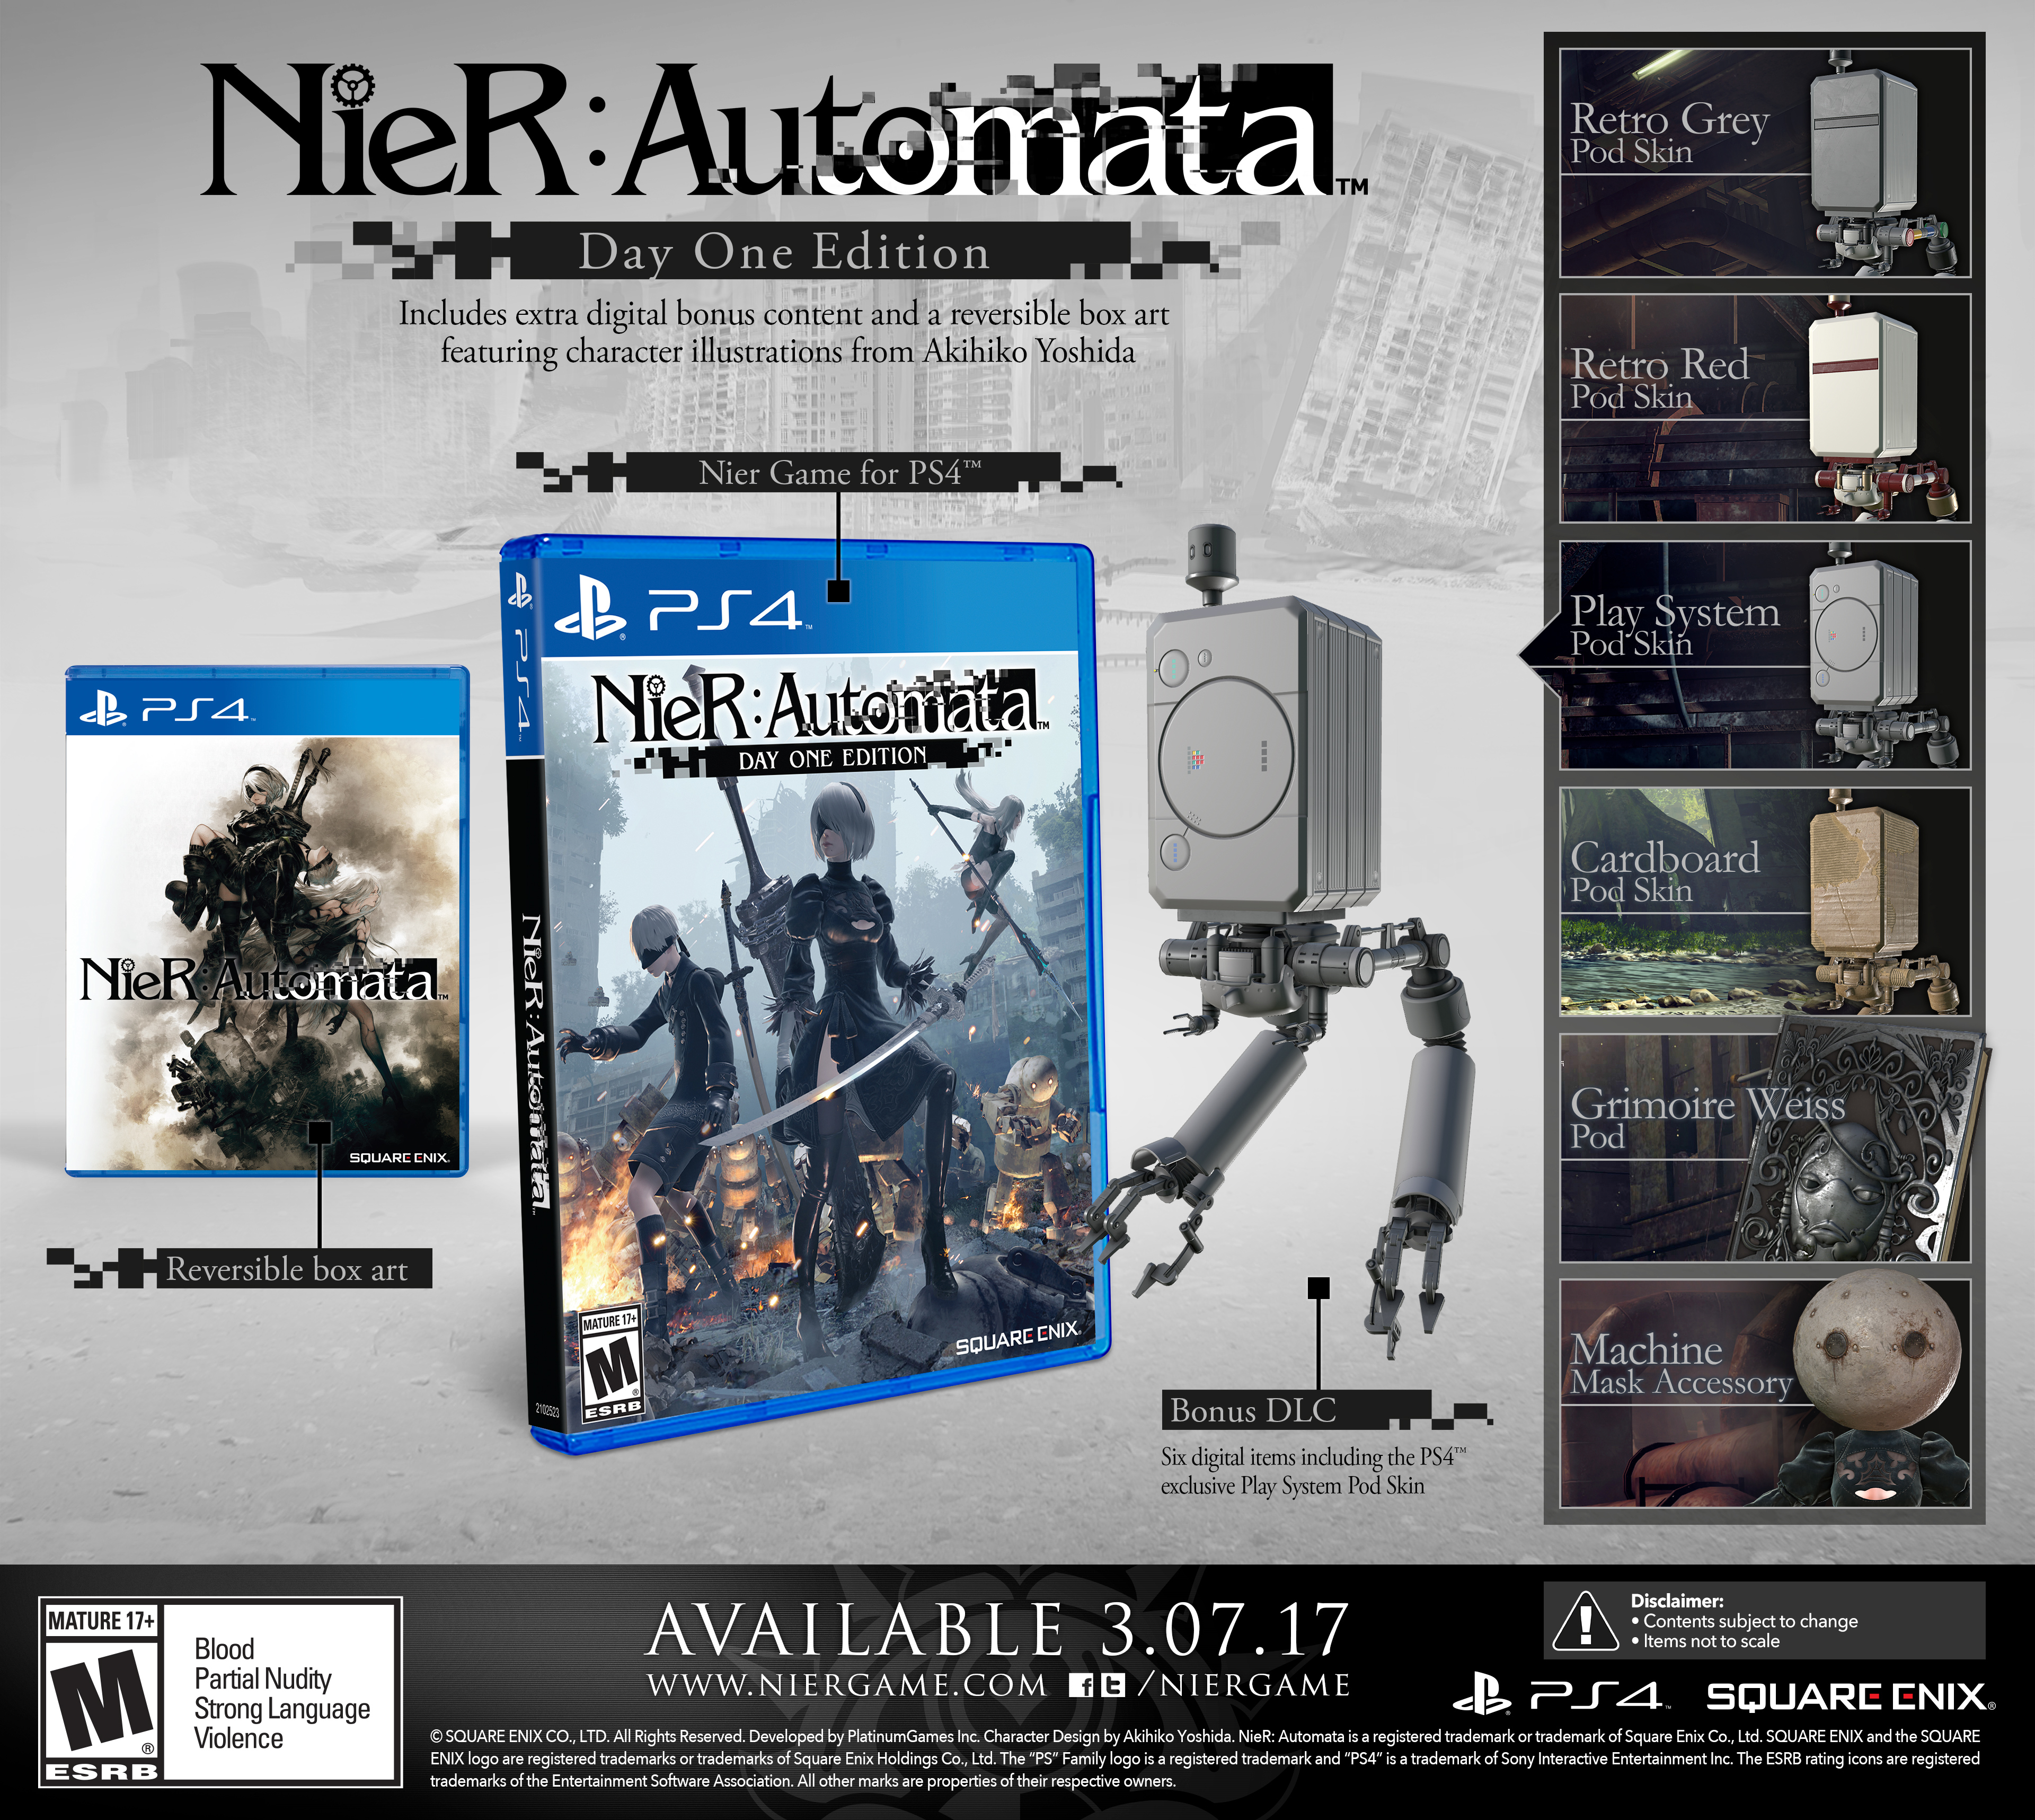 NieR-Automata-Day-One-Edition_12-03-16.jpg